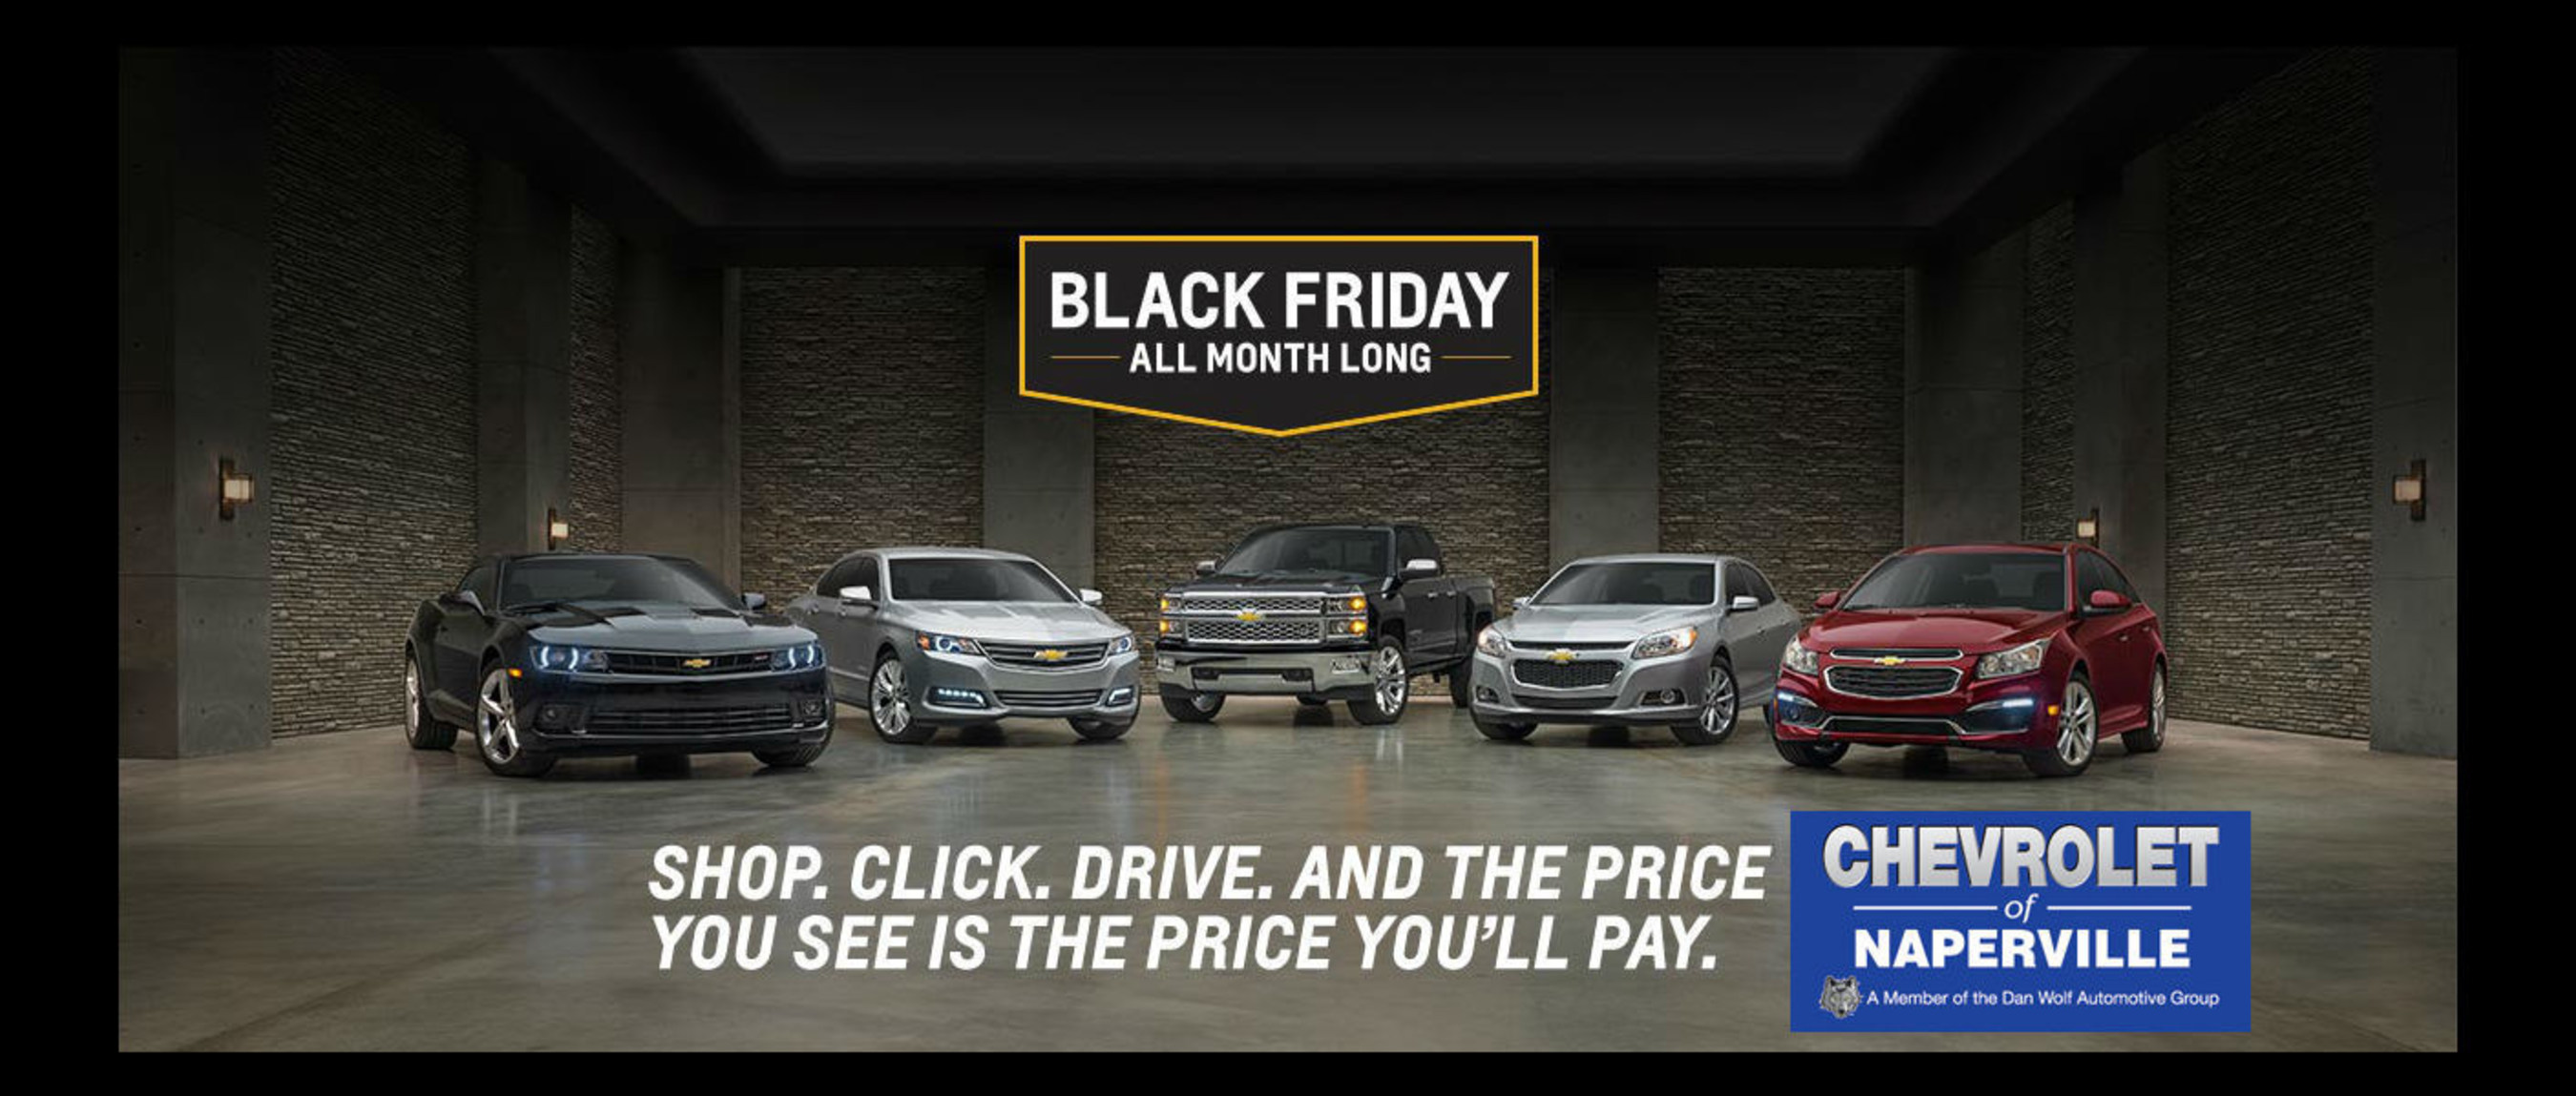 Chevrolet of Naperville offers Black Friday Sale all month